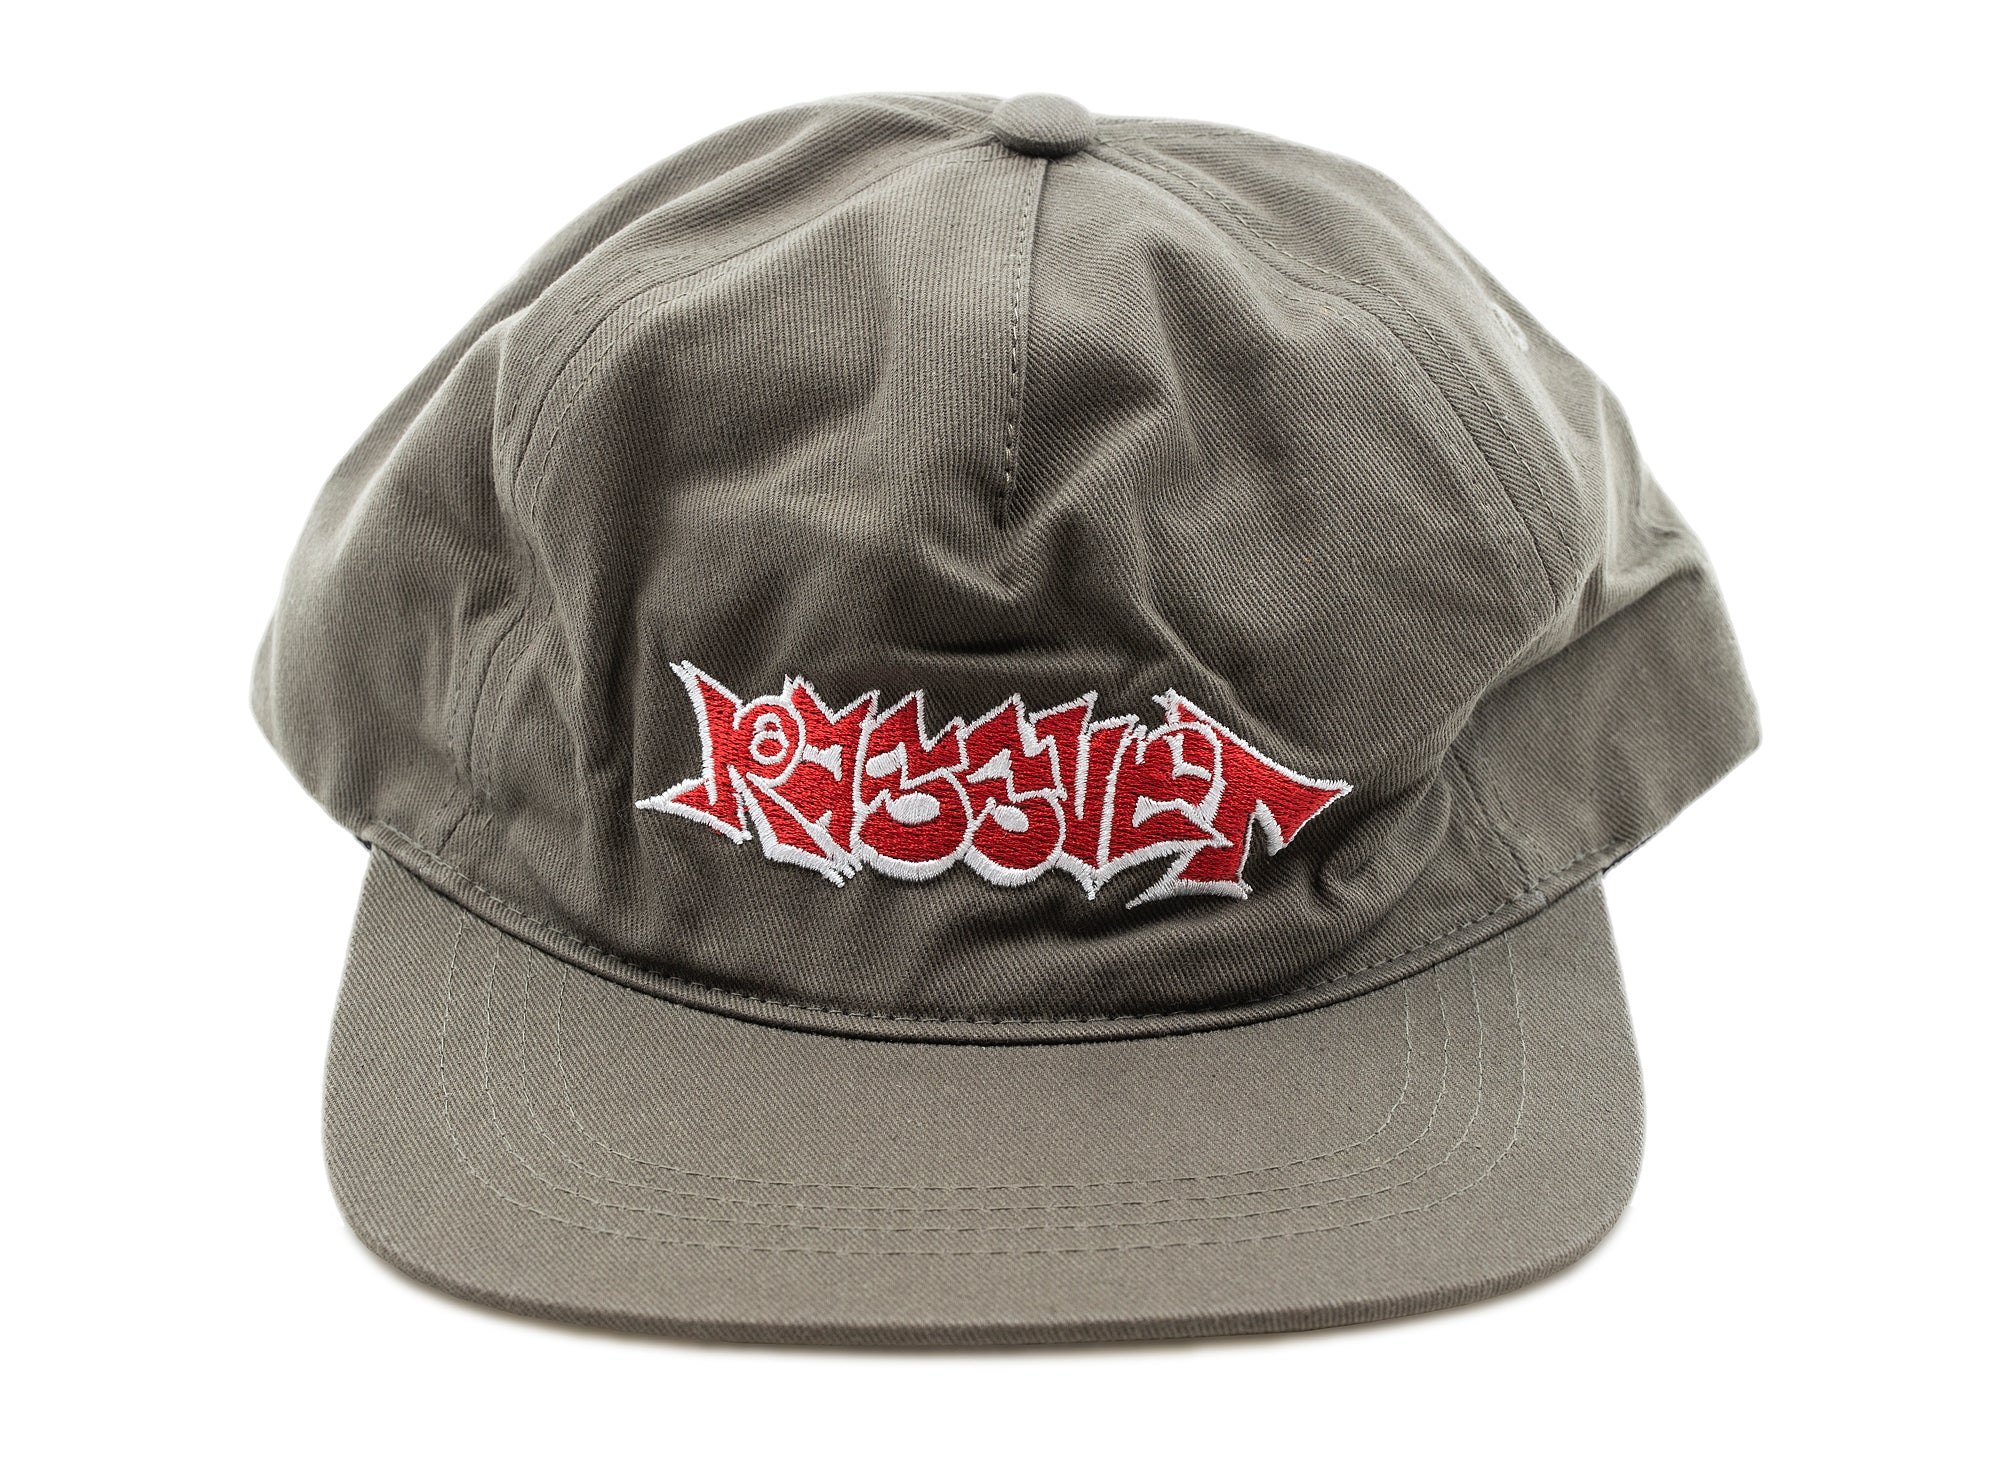 Rassvet (PACCBET) Embroidered Logo Cap in Grey